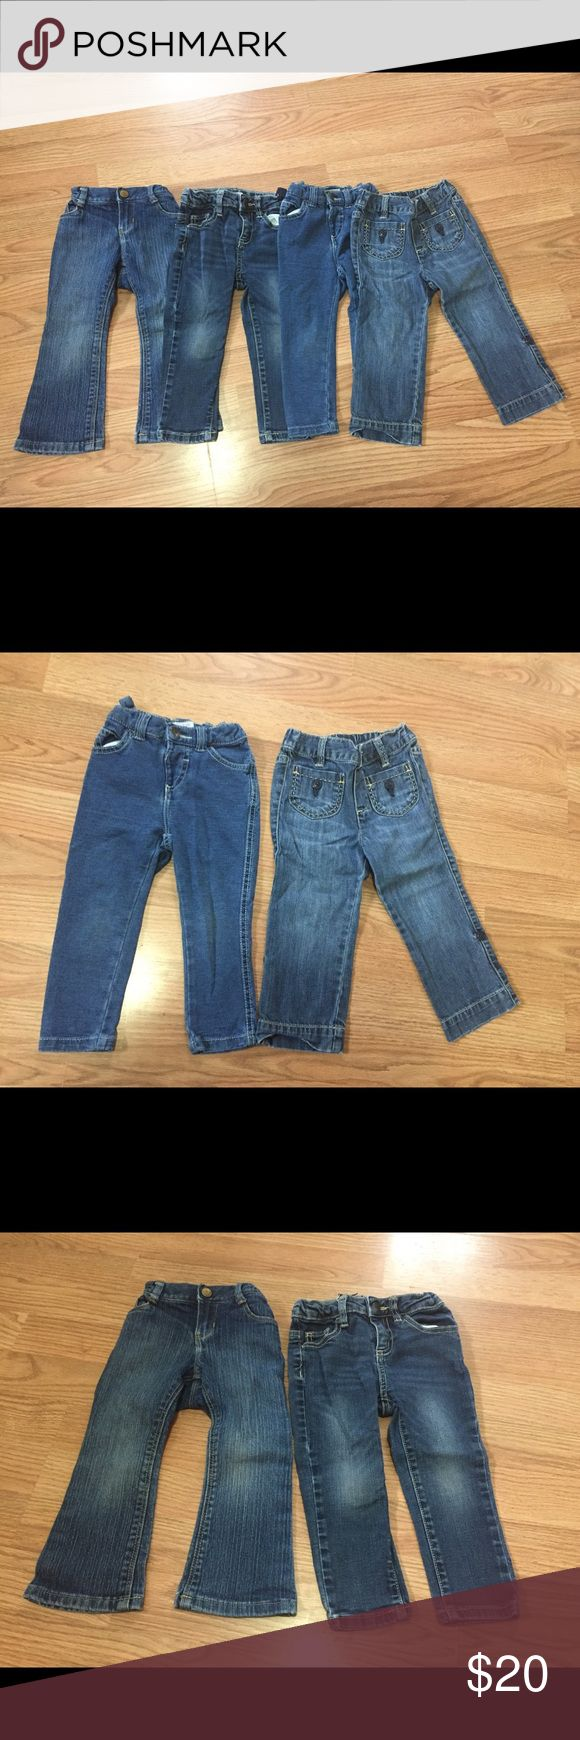 Bundle of 4 pairs of jeans. 2 Joe Fresh skinny (1 jogging) both adjustable waist. 1 pair Old Navy boot cut adjustable waist. 1 GAP elastic waist. In good shape, fading on some knees as pictured. GAP Bottoms Jeans